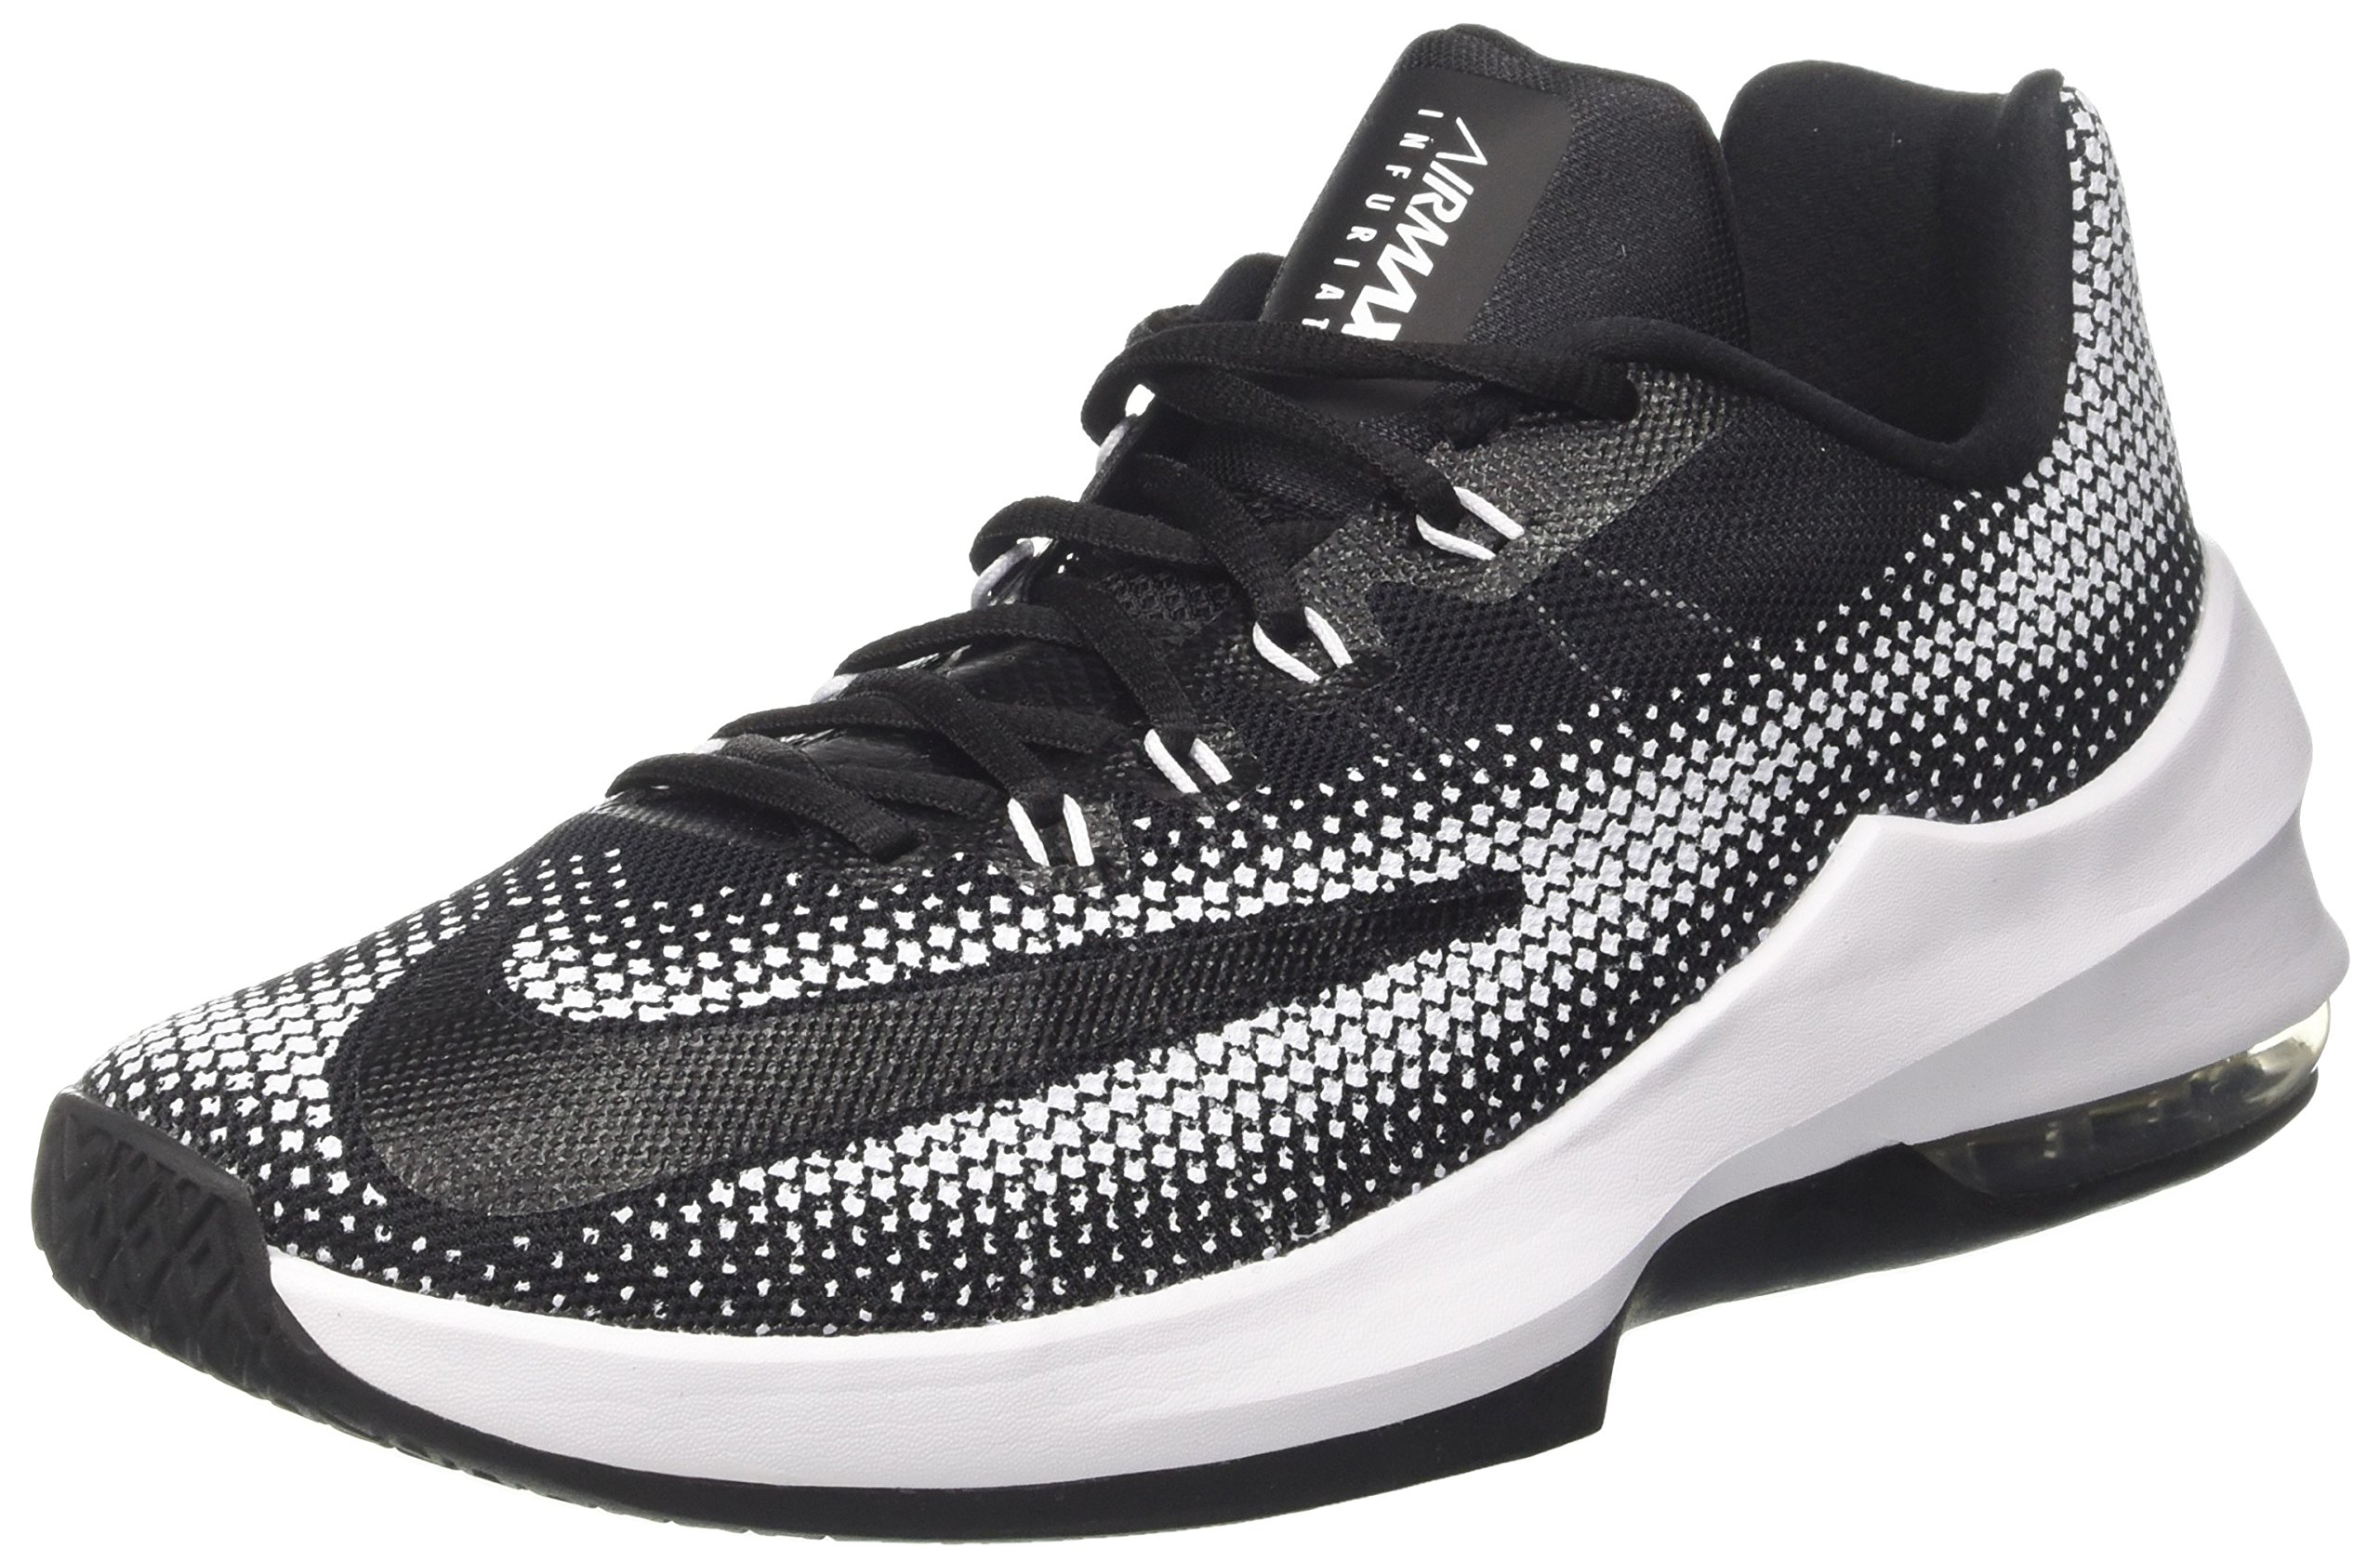 wholesale dealer a53ab daac9 Galleon - Nike Air Max Infuriate Low Men s Basketball Shoe, Black Black-White-DK  Grey, Size 12 M US